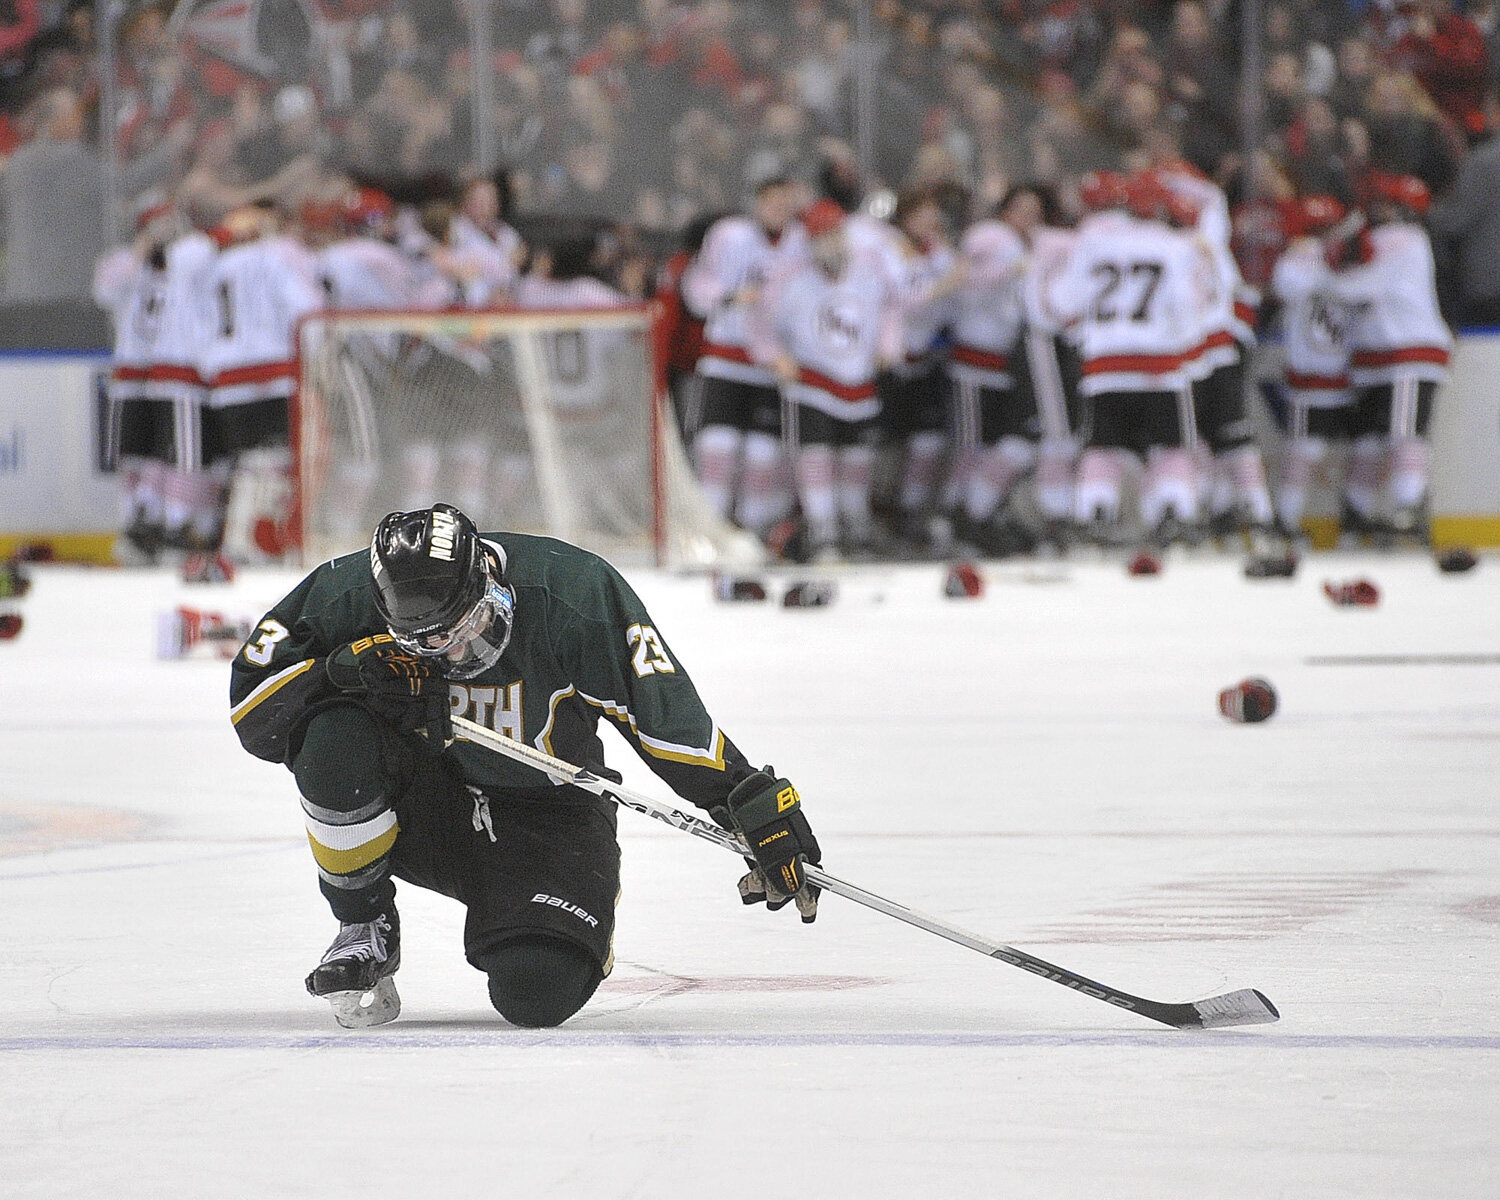 Spartans Brian Couto kneels in shock as Williamsville North falls to Niagara-Wheatfield 6-4 in Federation League finals at First Niagara Center.